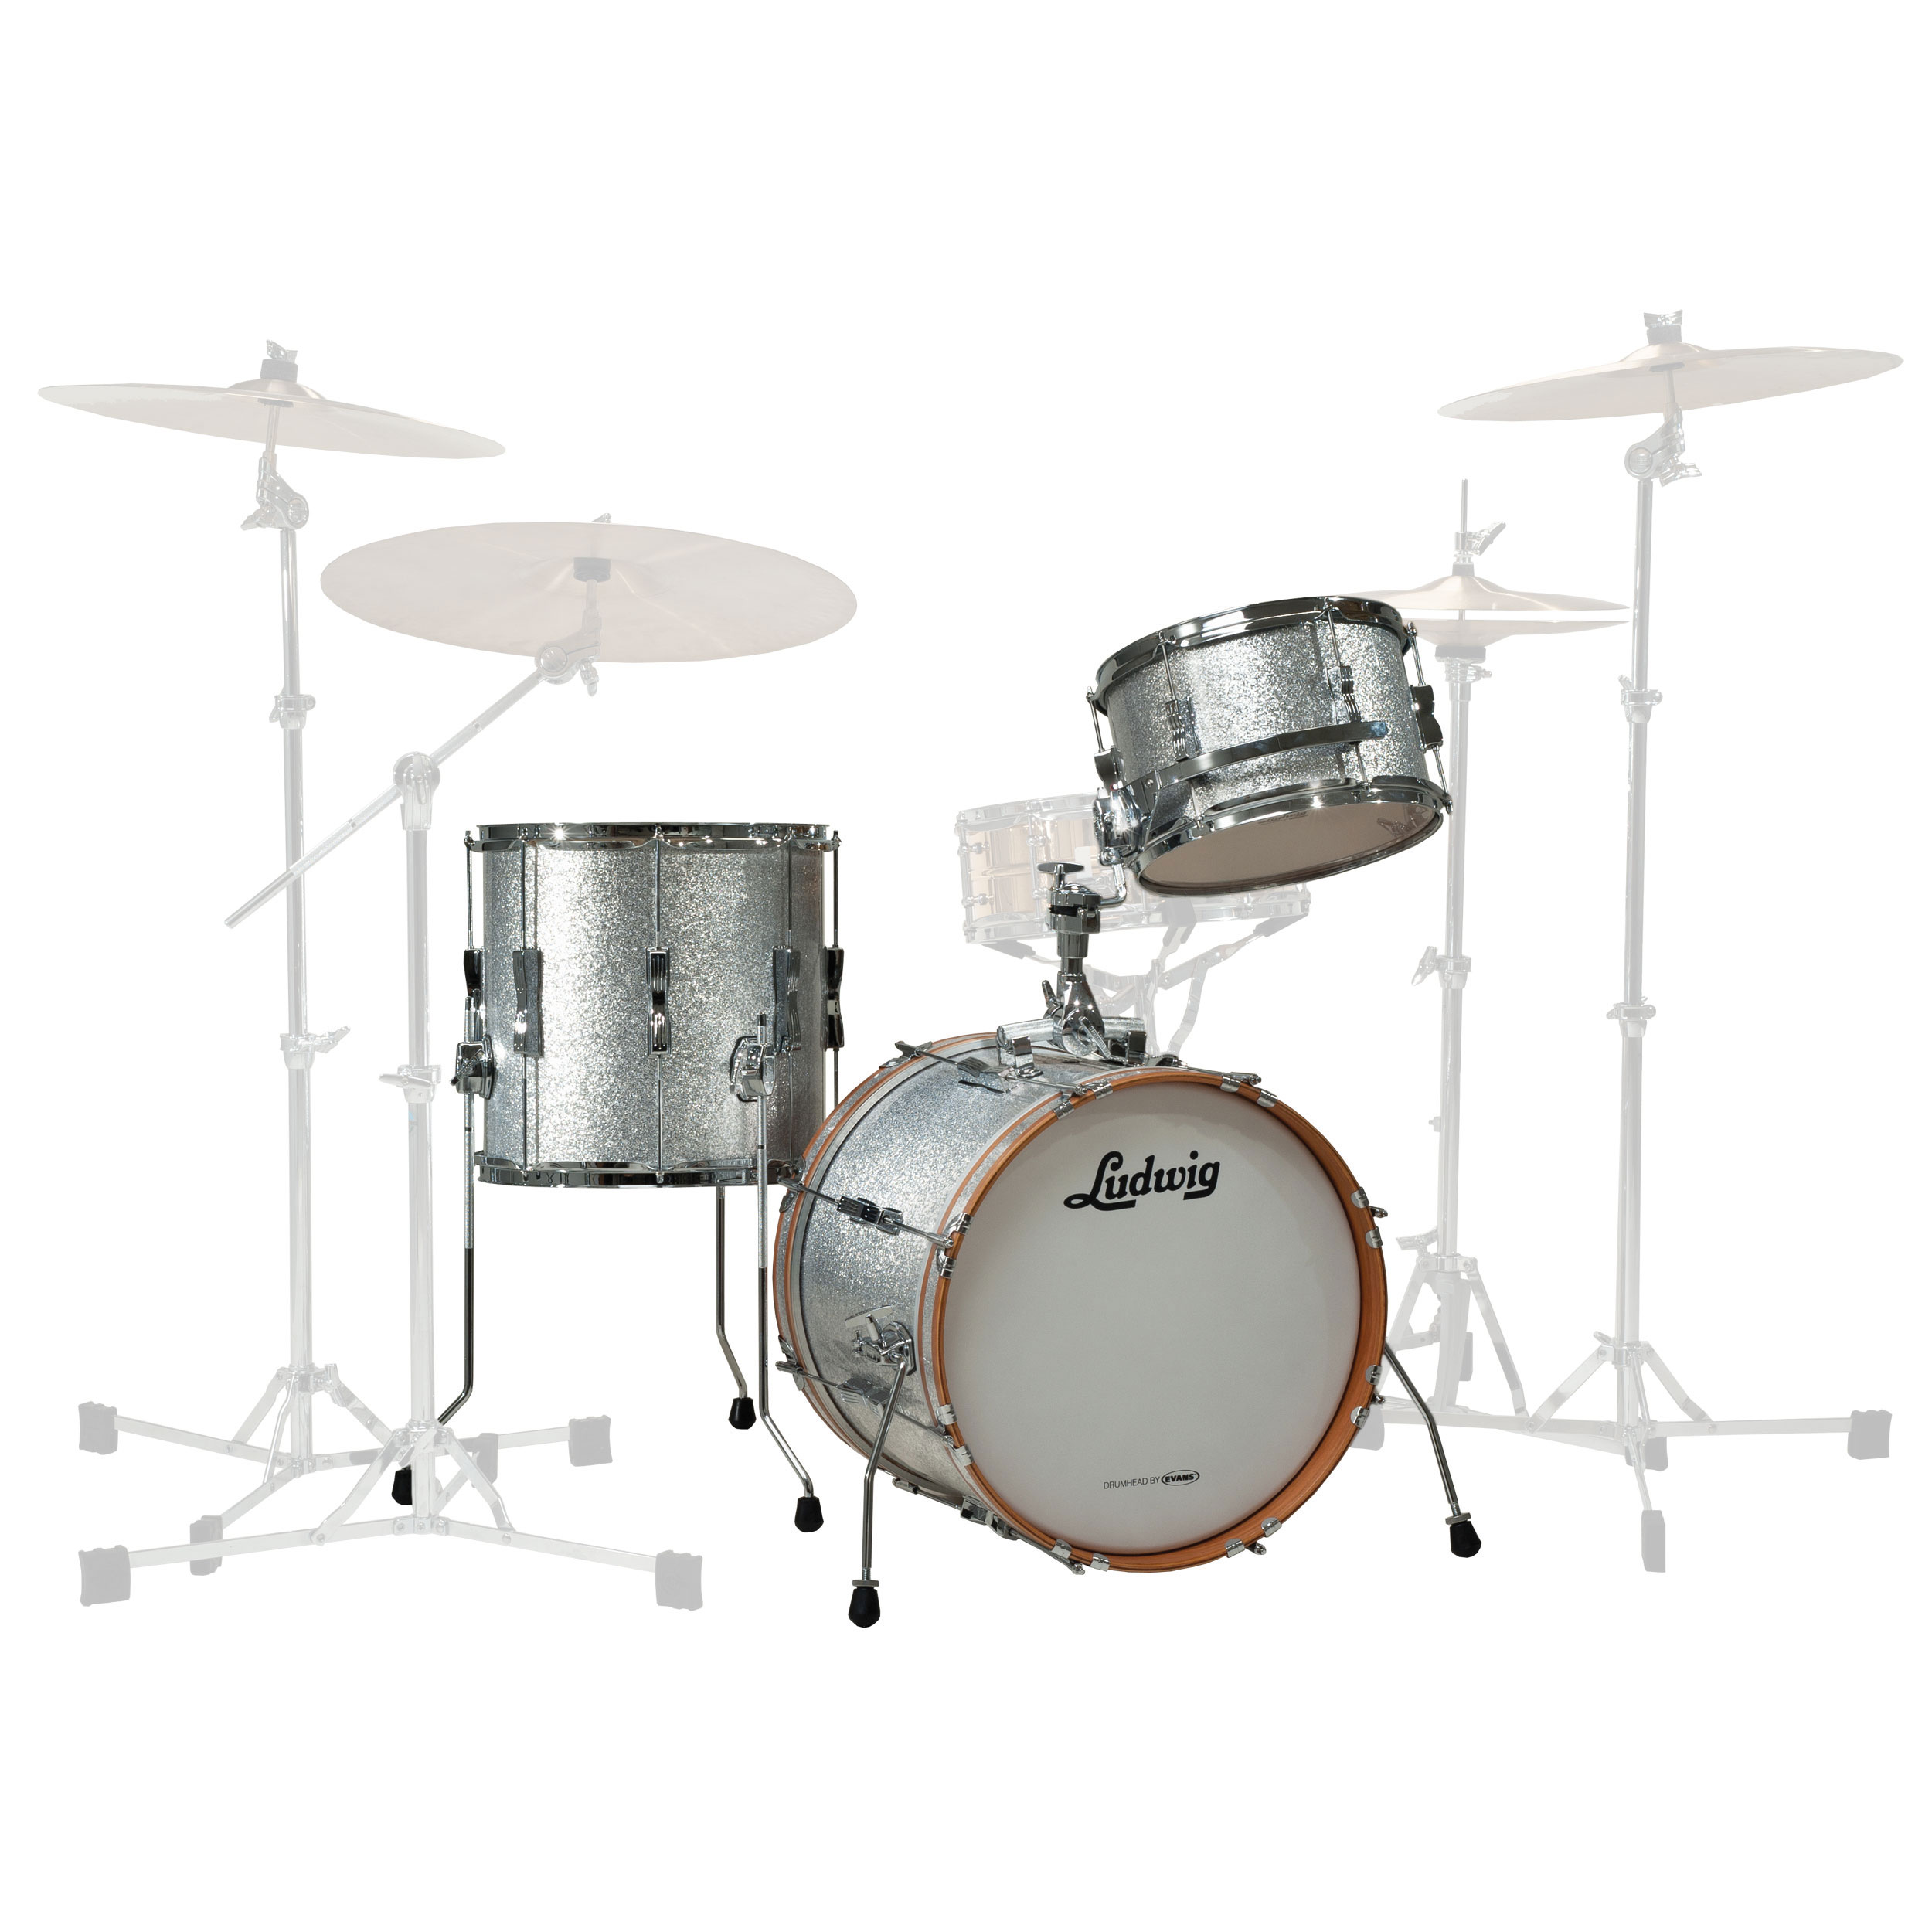 Dating ludwig drums